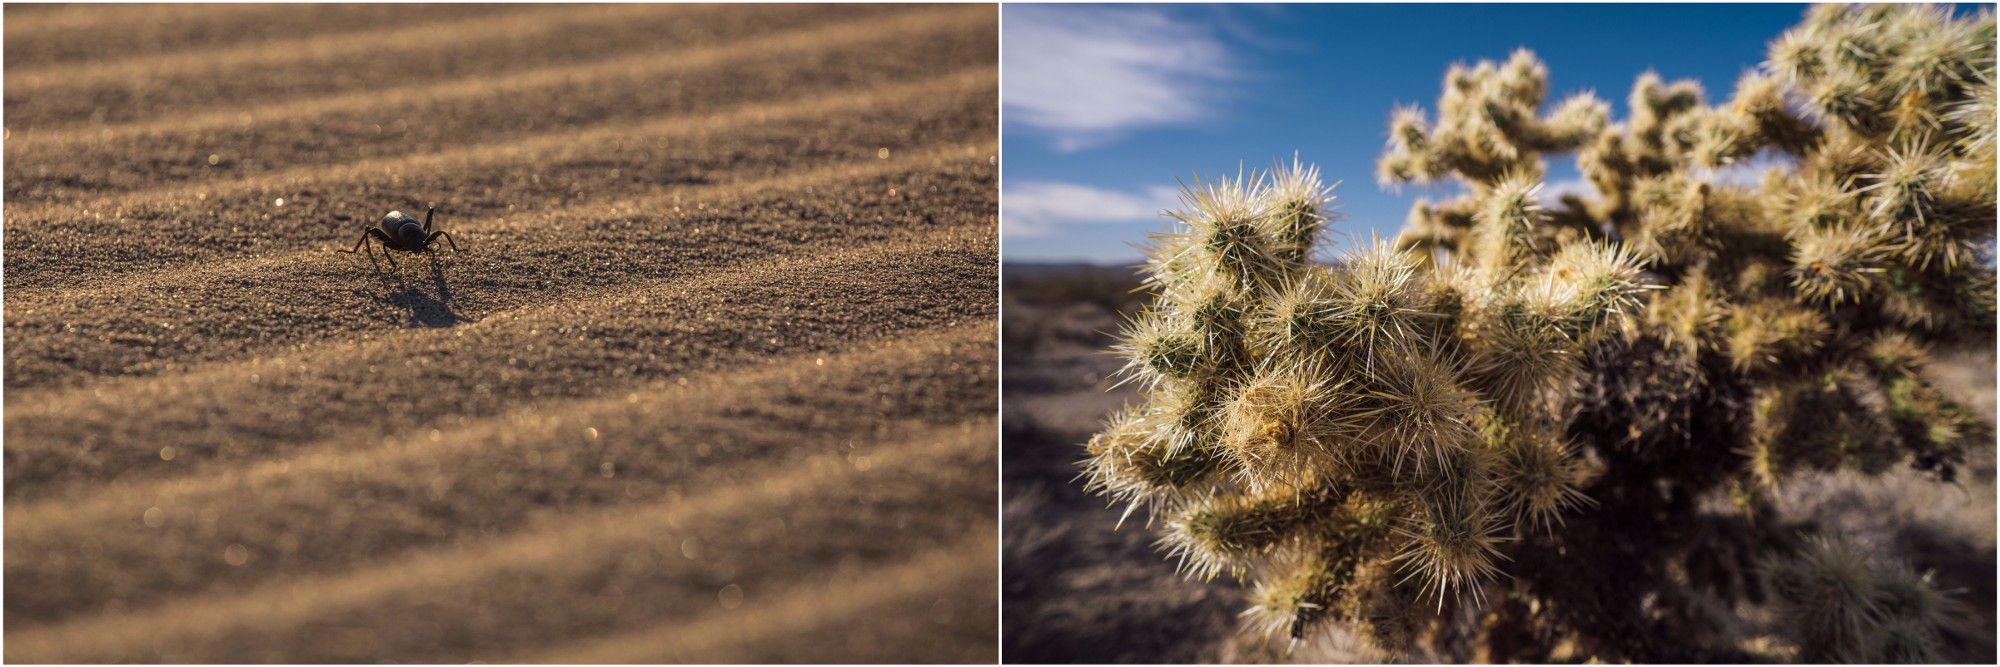 - Left: a Pinacate beetle on its way to cross a massive sand dune. They never drink water, instead they extract the necessary fluids from fungus and decaying vegetation that they consume. When approached, you might see them do a strange headstand; that's a defense mechanism to deter predators, as they release into the air a sticky, noxious substance that is hard to remove. If you're bent over one as it's doing the headstand, you might want to reconsider your position. Right: The Cholla cactus looks more like a fluffy teddy bear, but its spines are some of the hardest to remove. Within the Mojave Trails National Monument, the Bigelow Cholla Garden Wilderness harbors the largest density of Cholla cacti in California.